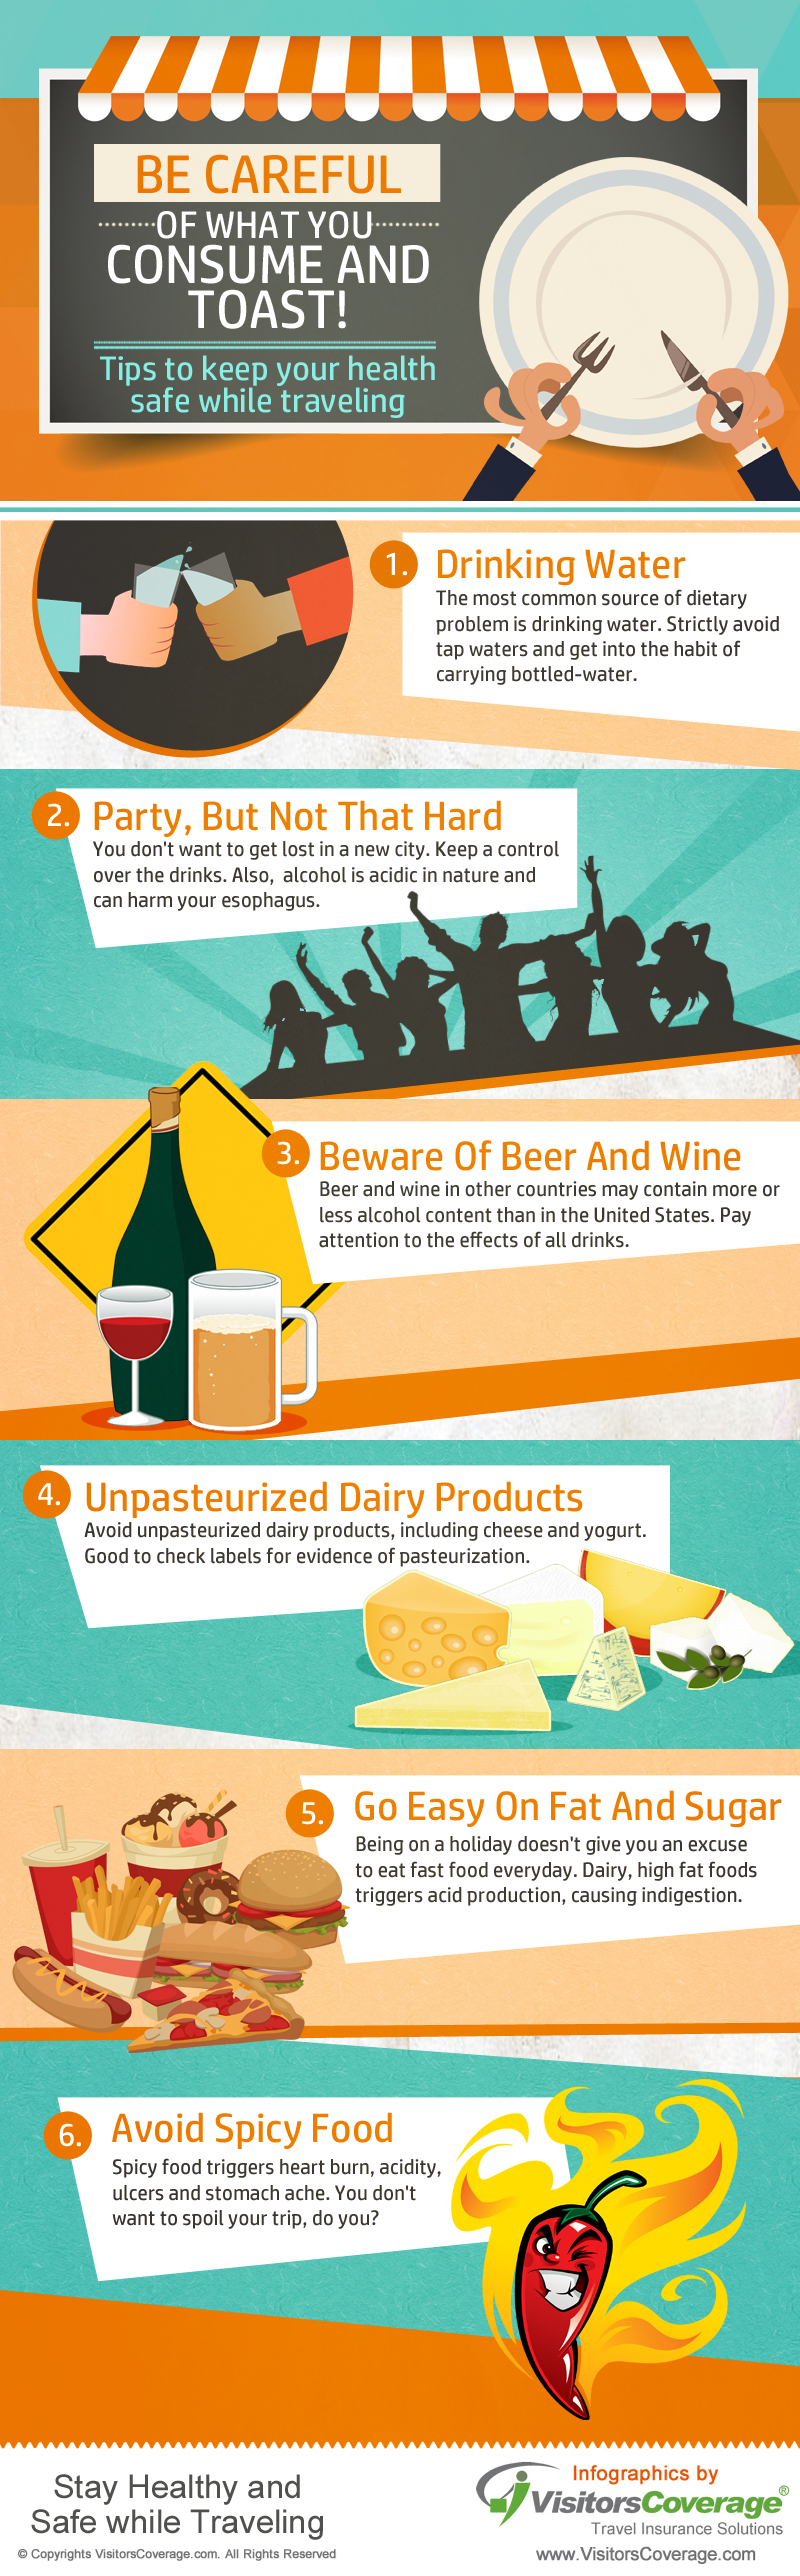 What NOT To Drink and Eat While Traveling